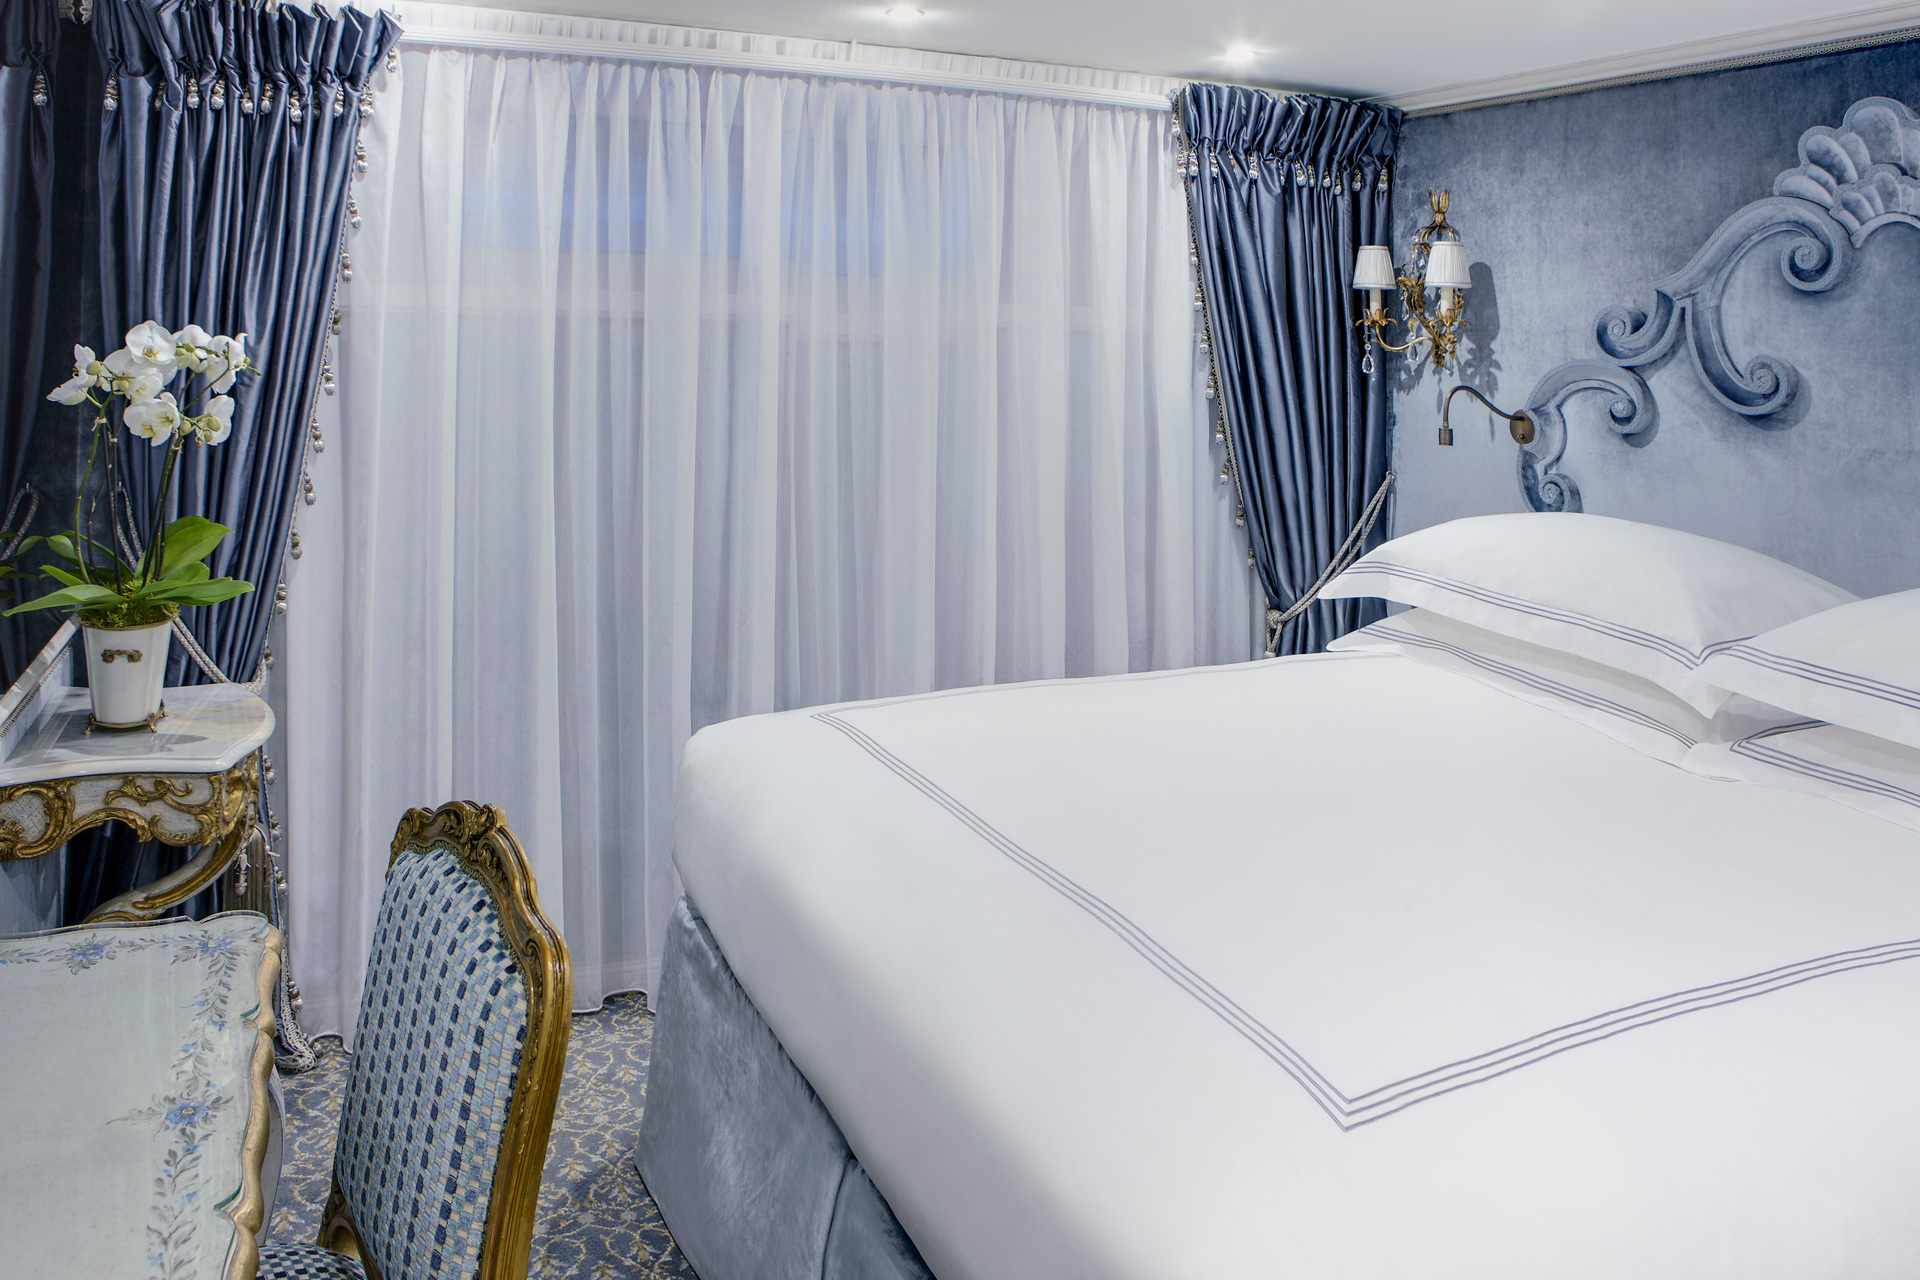 UNIWORLD Boutique River Cruises SS Maria Theresa Accommodation Stateroom Category 4-5 1.jpg